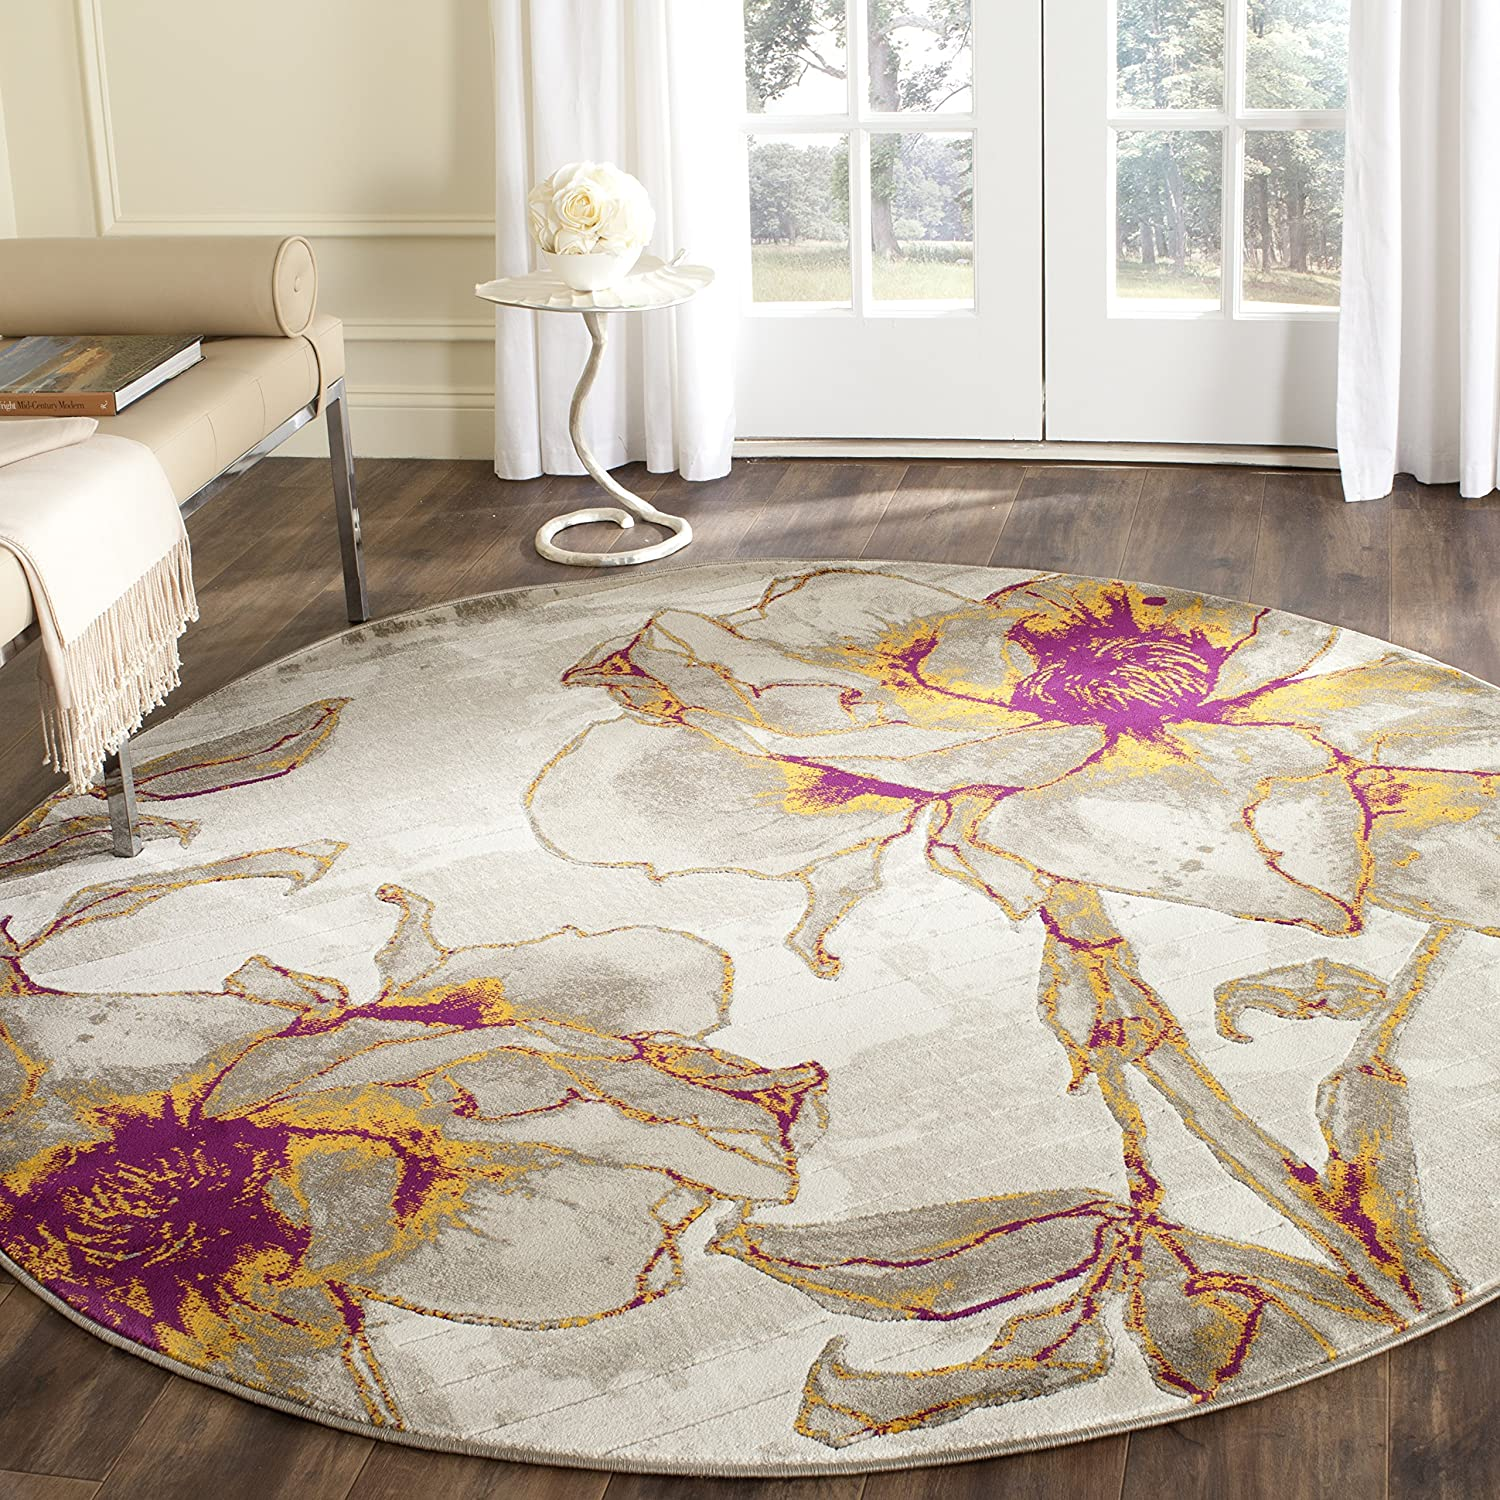 Amazon Com Safavieh Porcello Collection Prl7733e Floral Non Shedding Stain Resistant Living Room Bedroom Area Rug 6 7 X Round Ivory Grey Furniture Decor